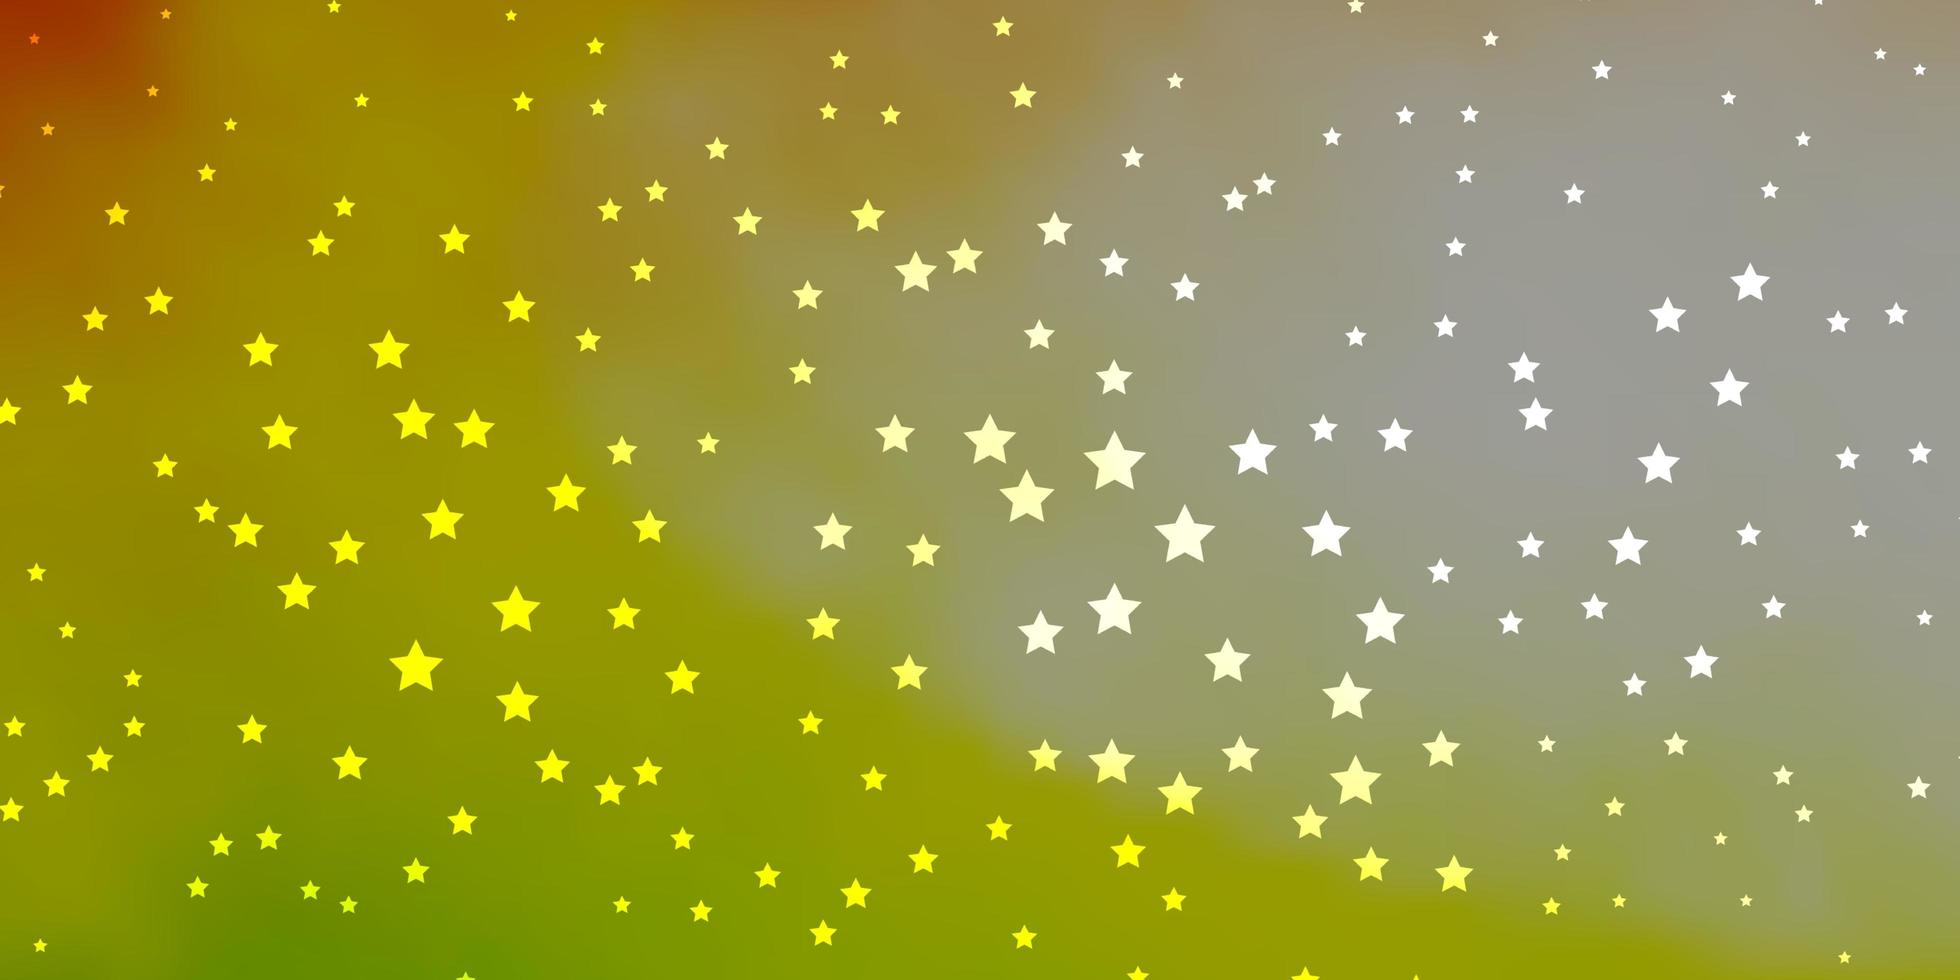 Dark green and red pattern with abstract stars vector